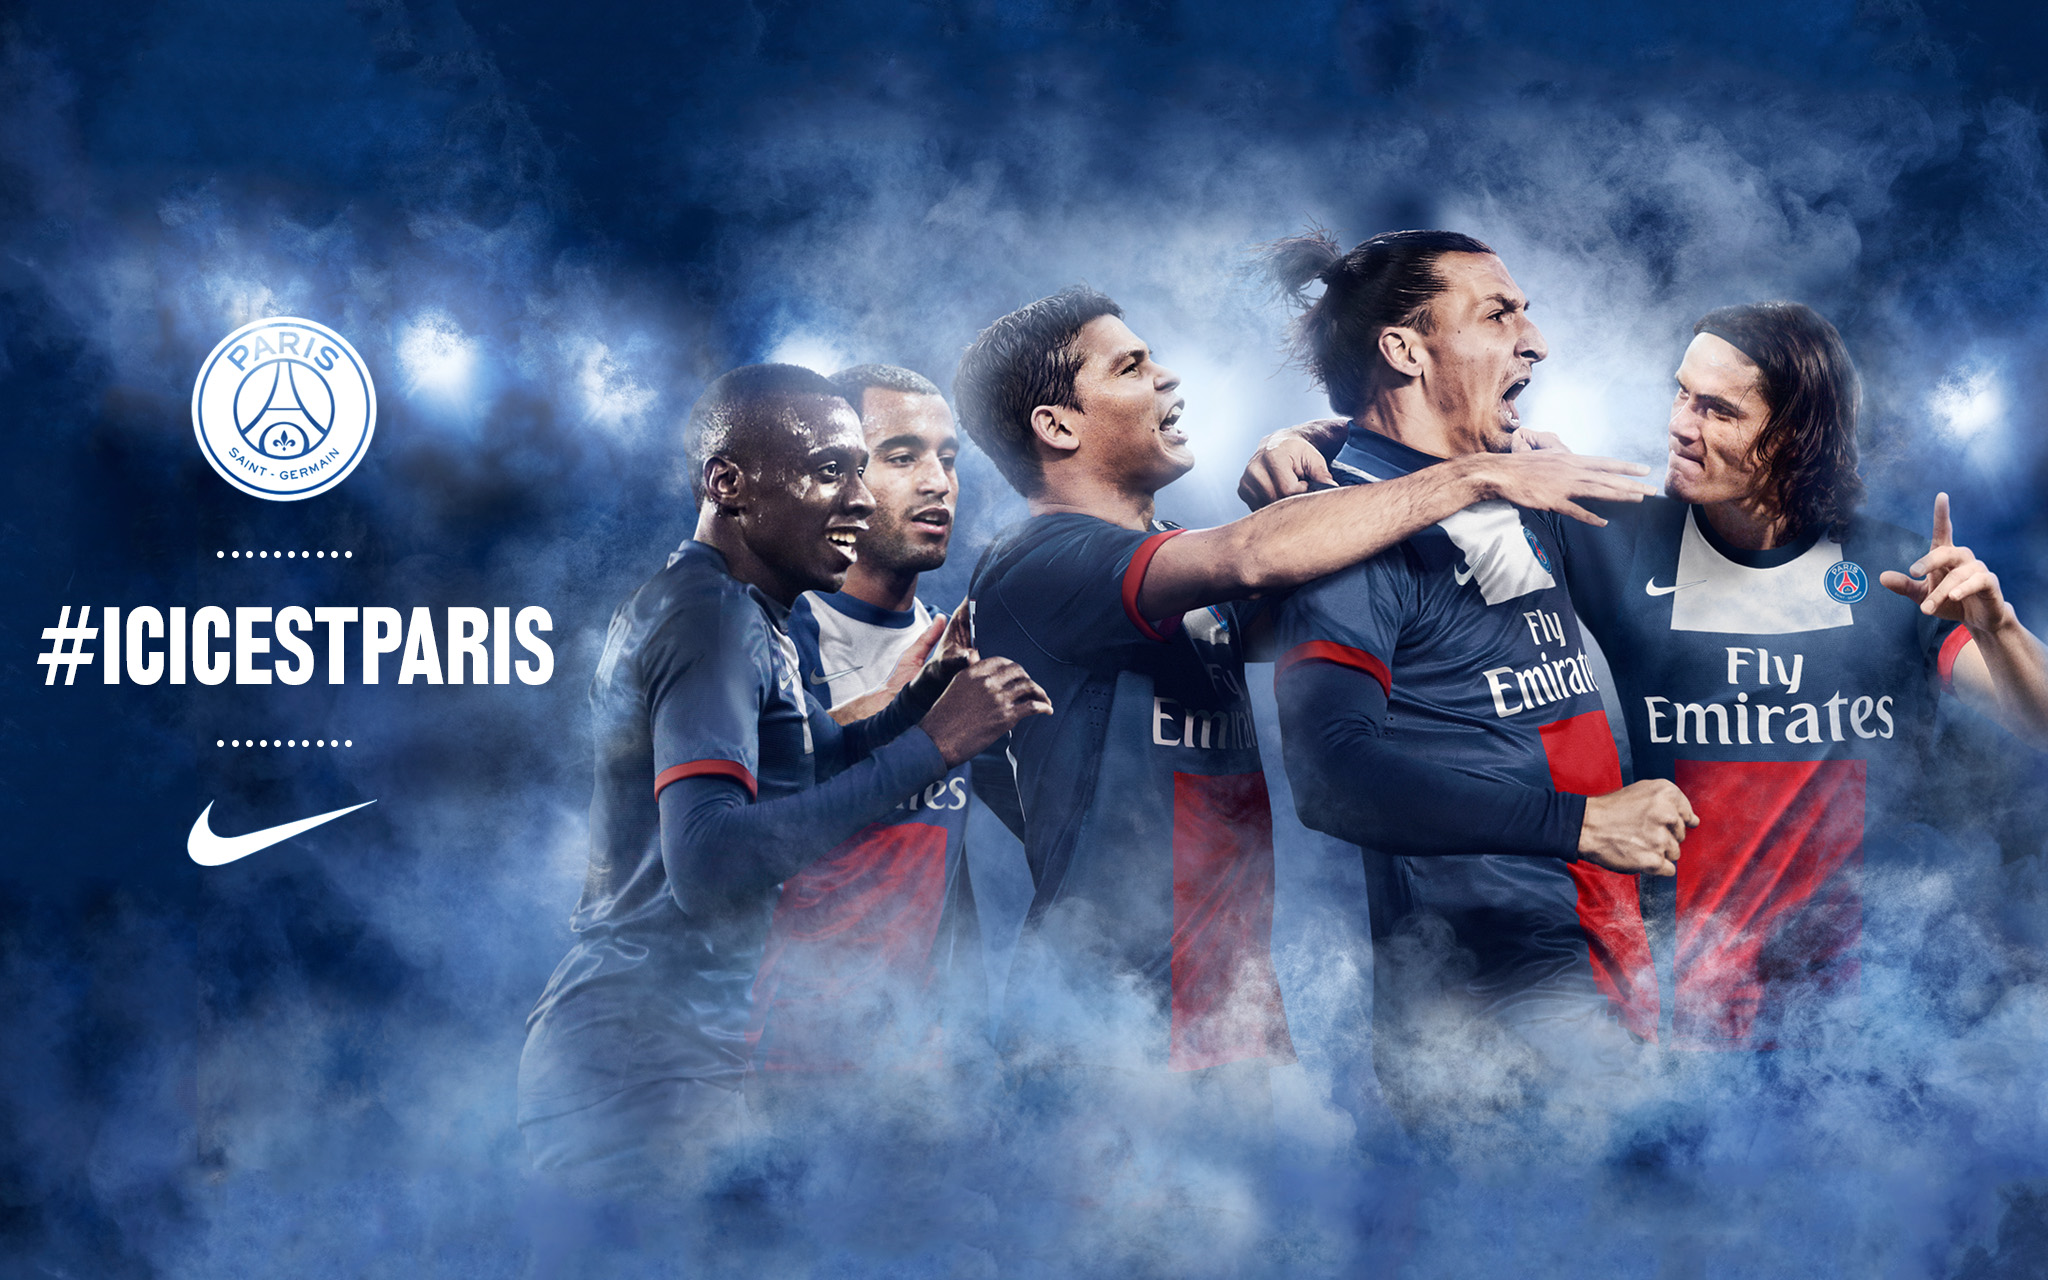 01. PSG_Groupshot_FB